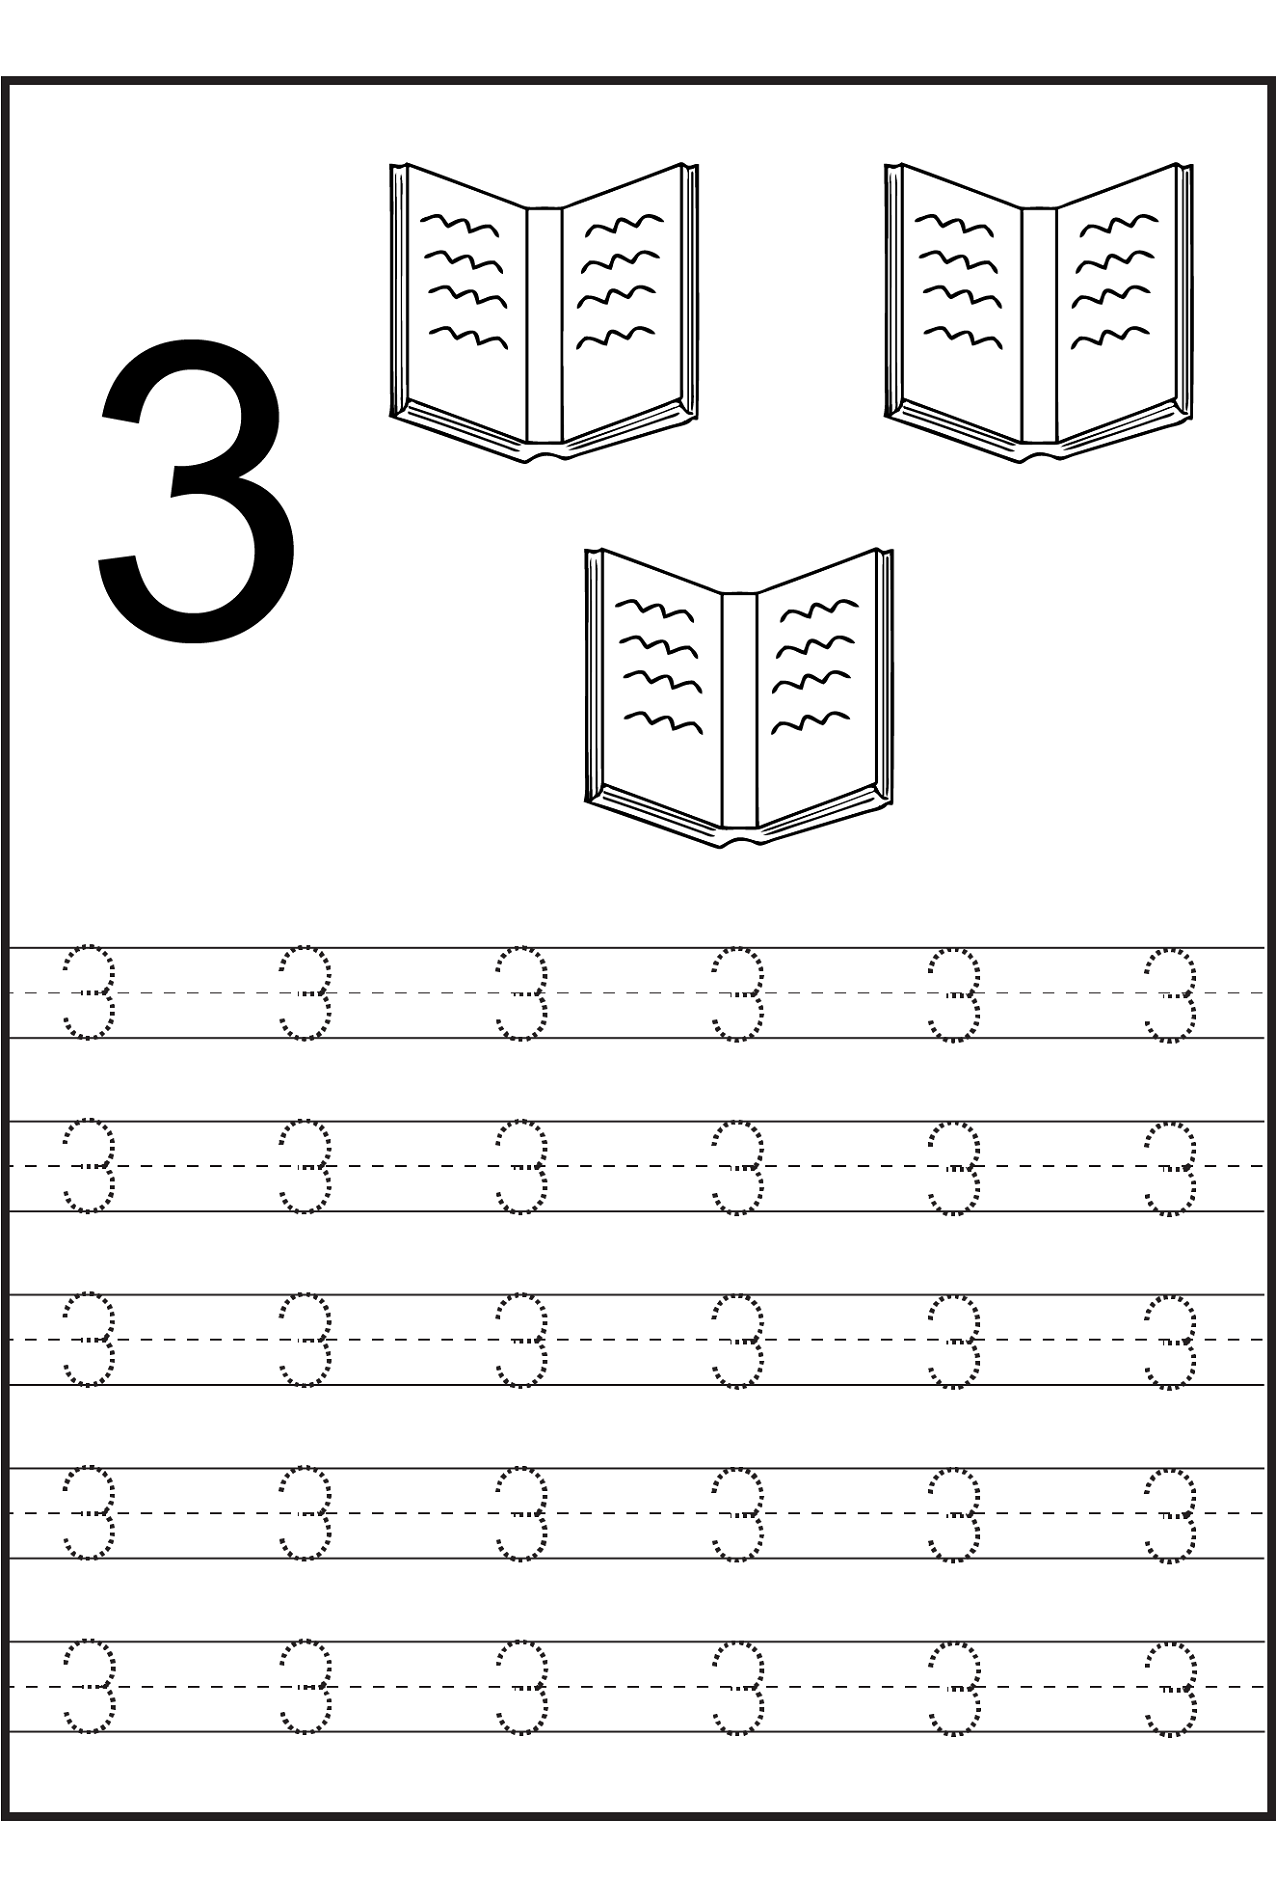 Worksheets For 2 Year Olds Number 3